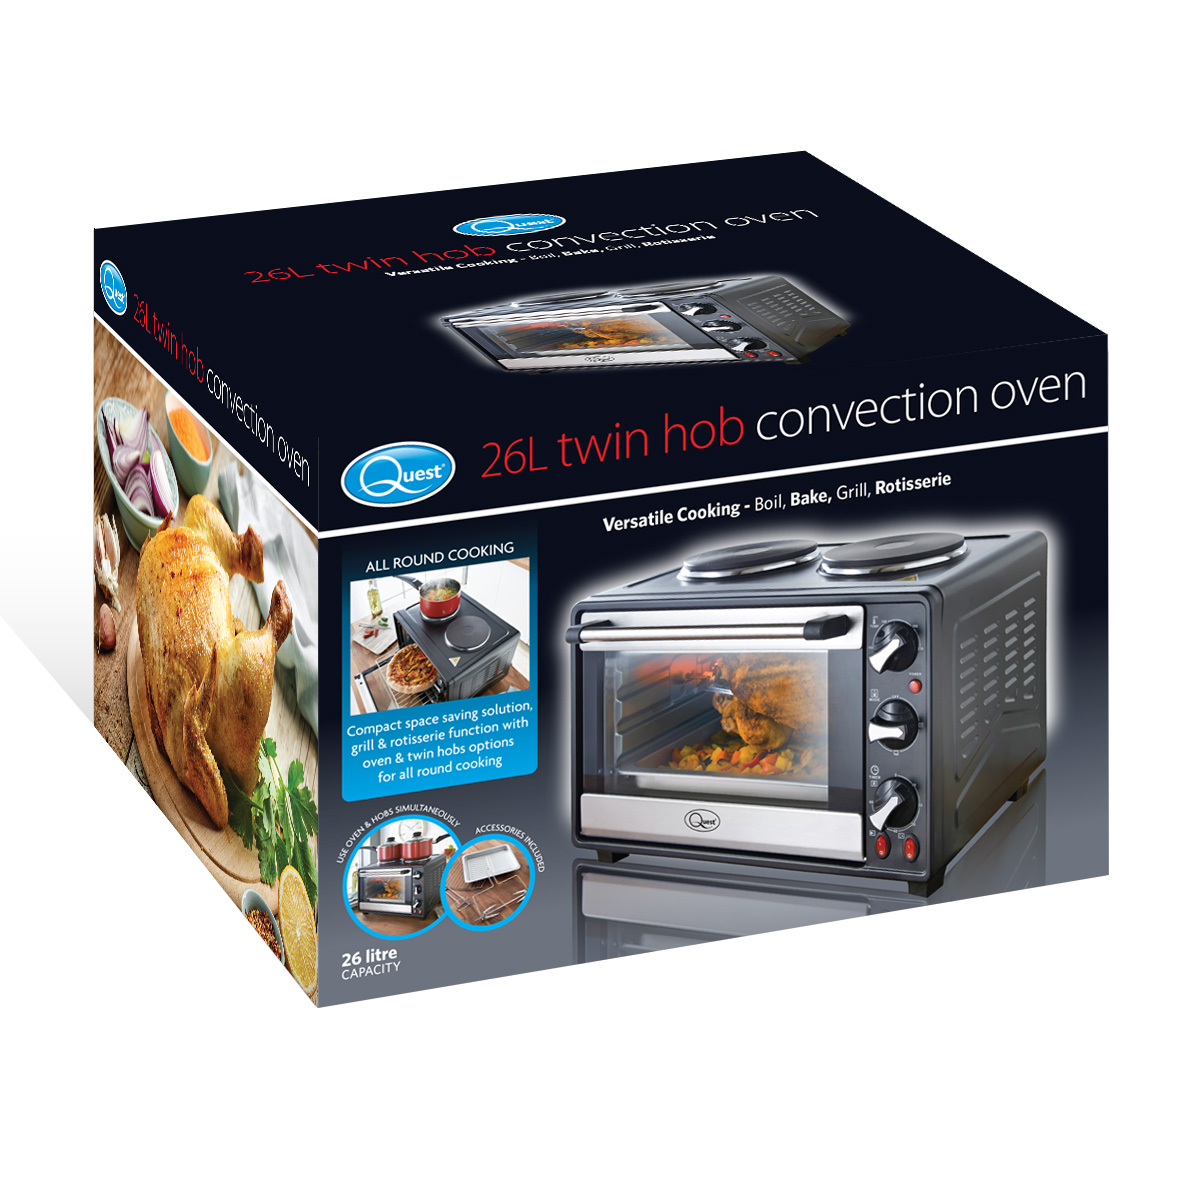 Twin Hob Convection Oven box